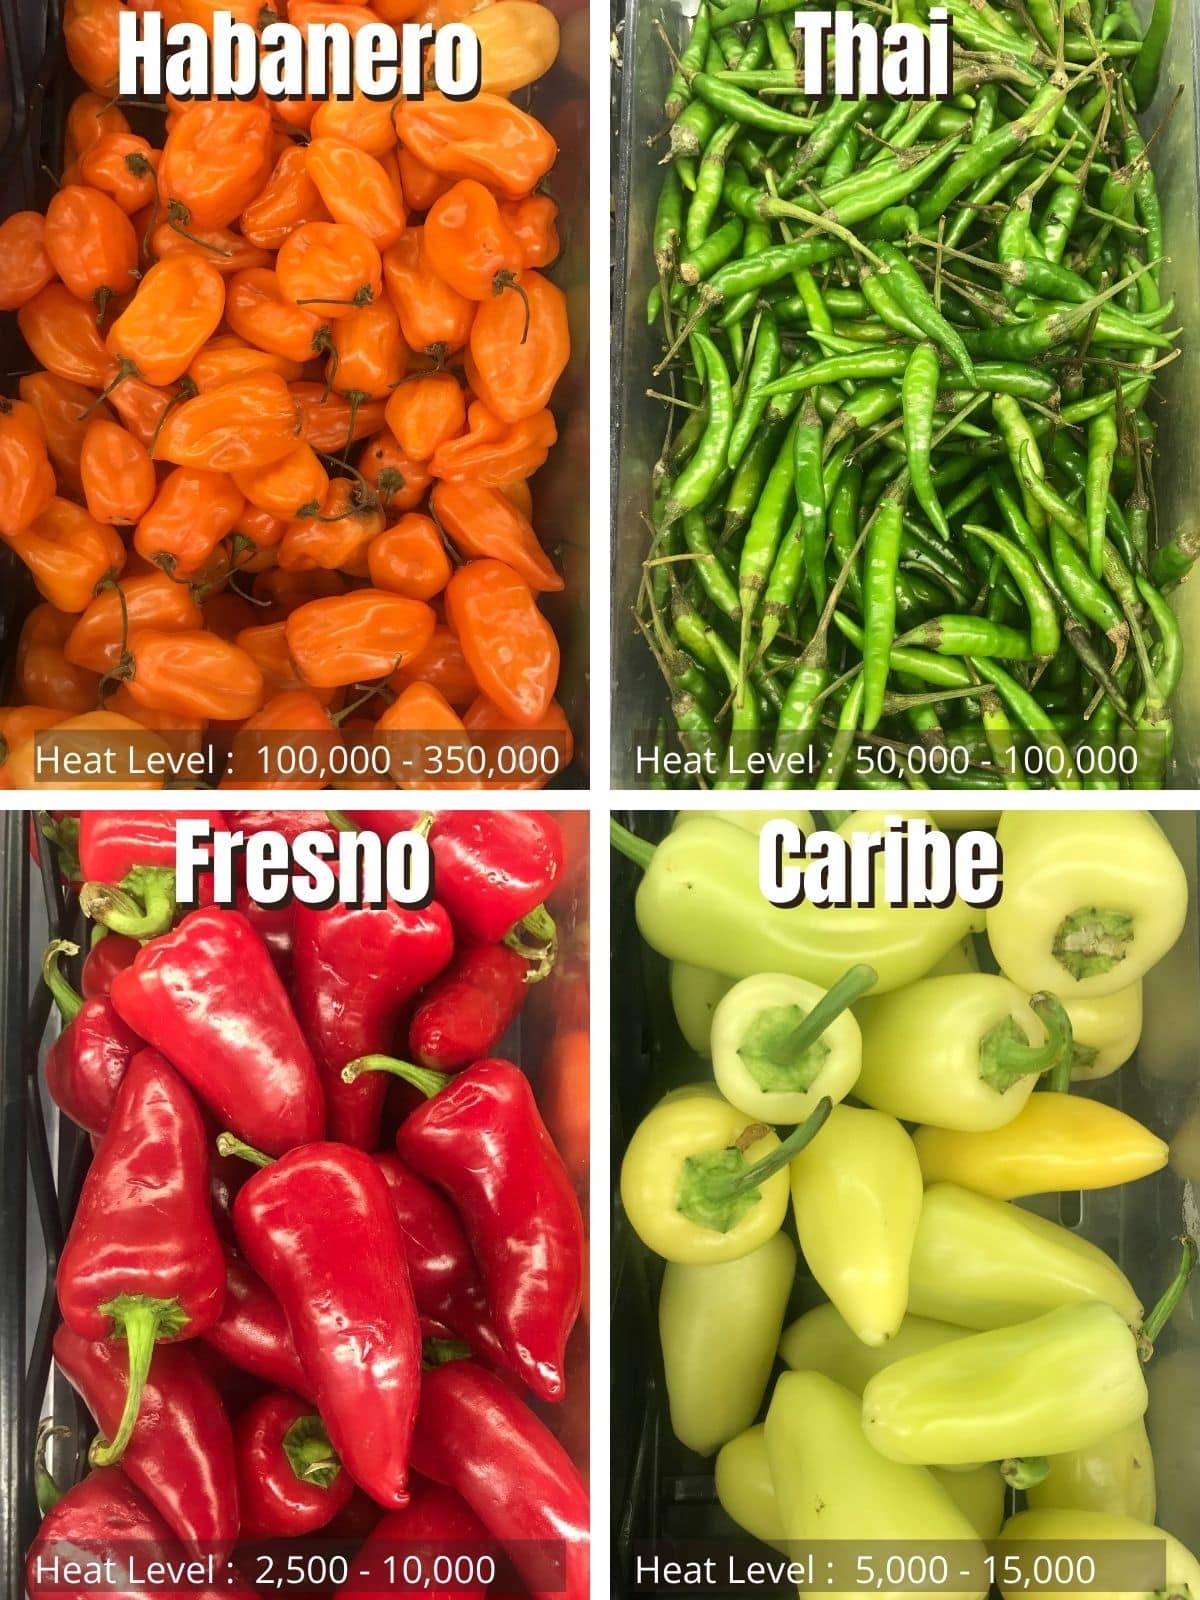 chili peppers guide with their heat level